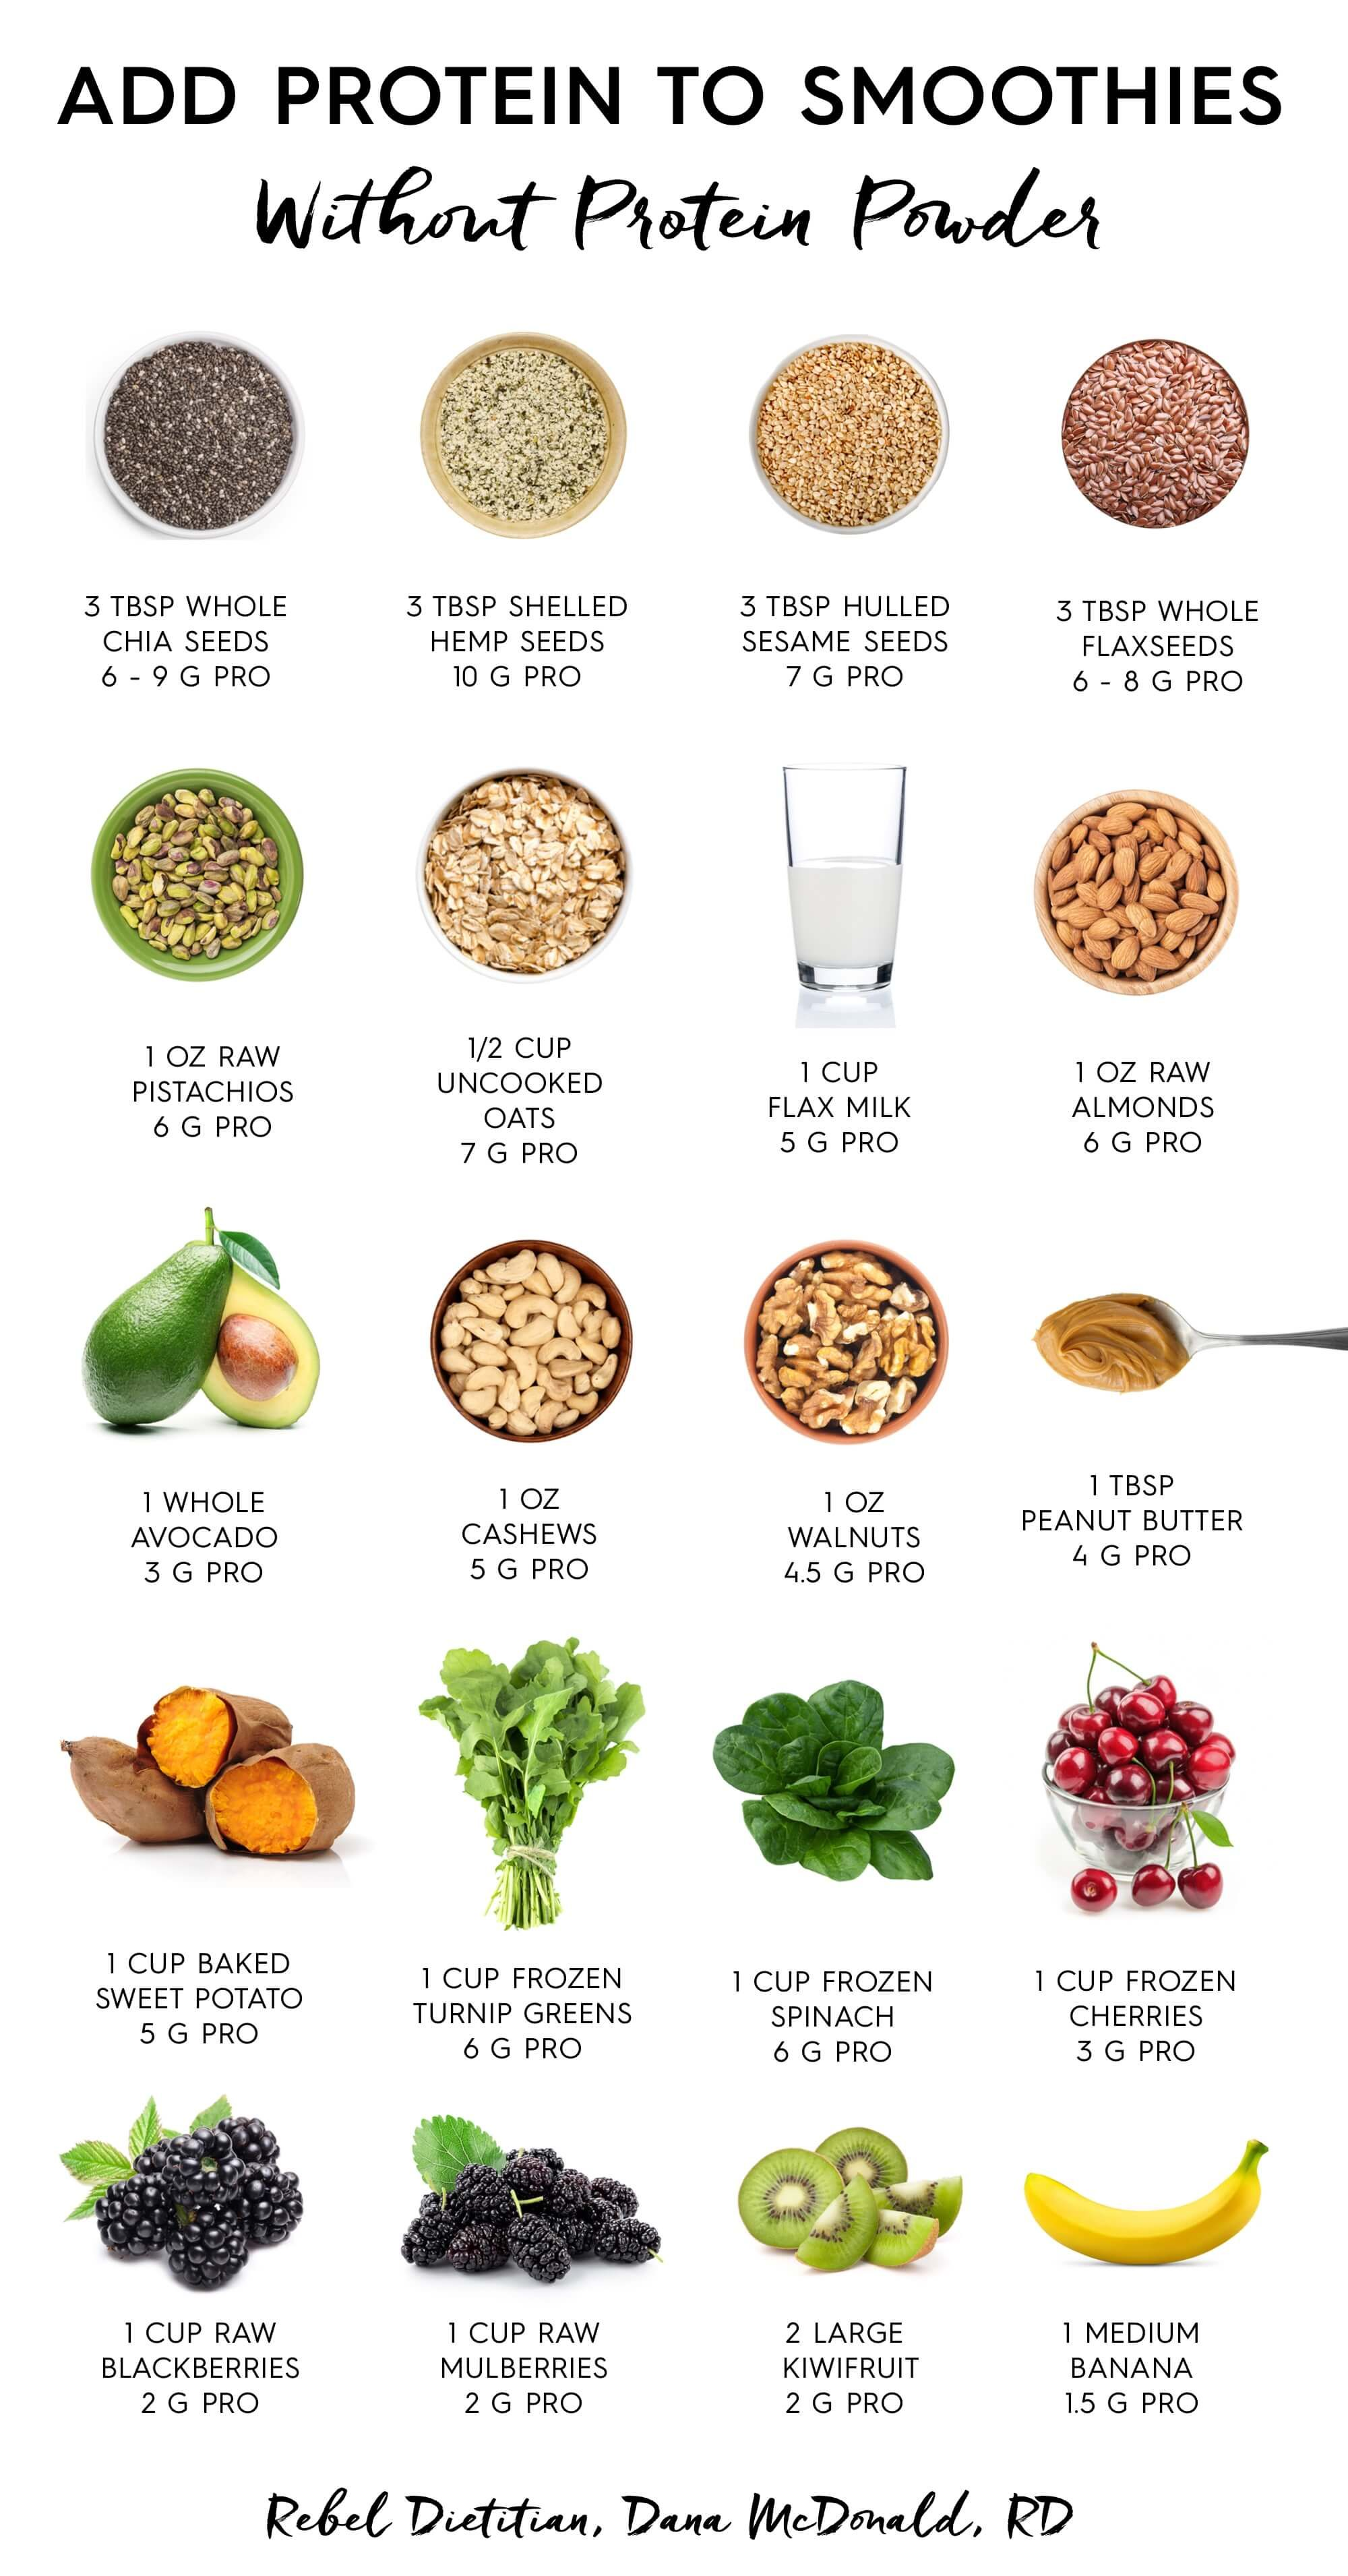 Add Protein To Smoothies Without Protein Powder